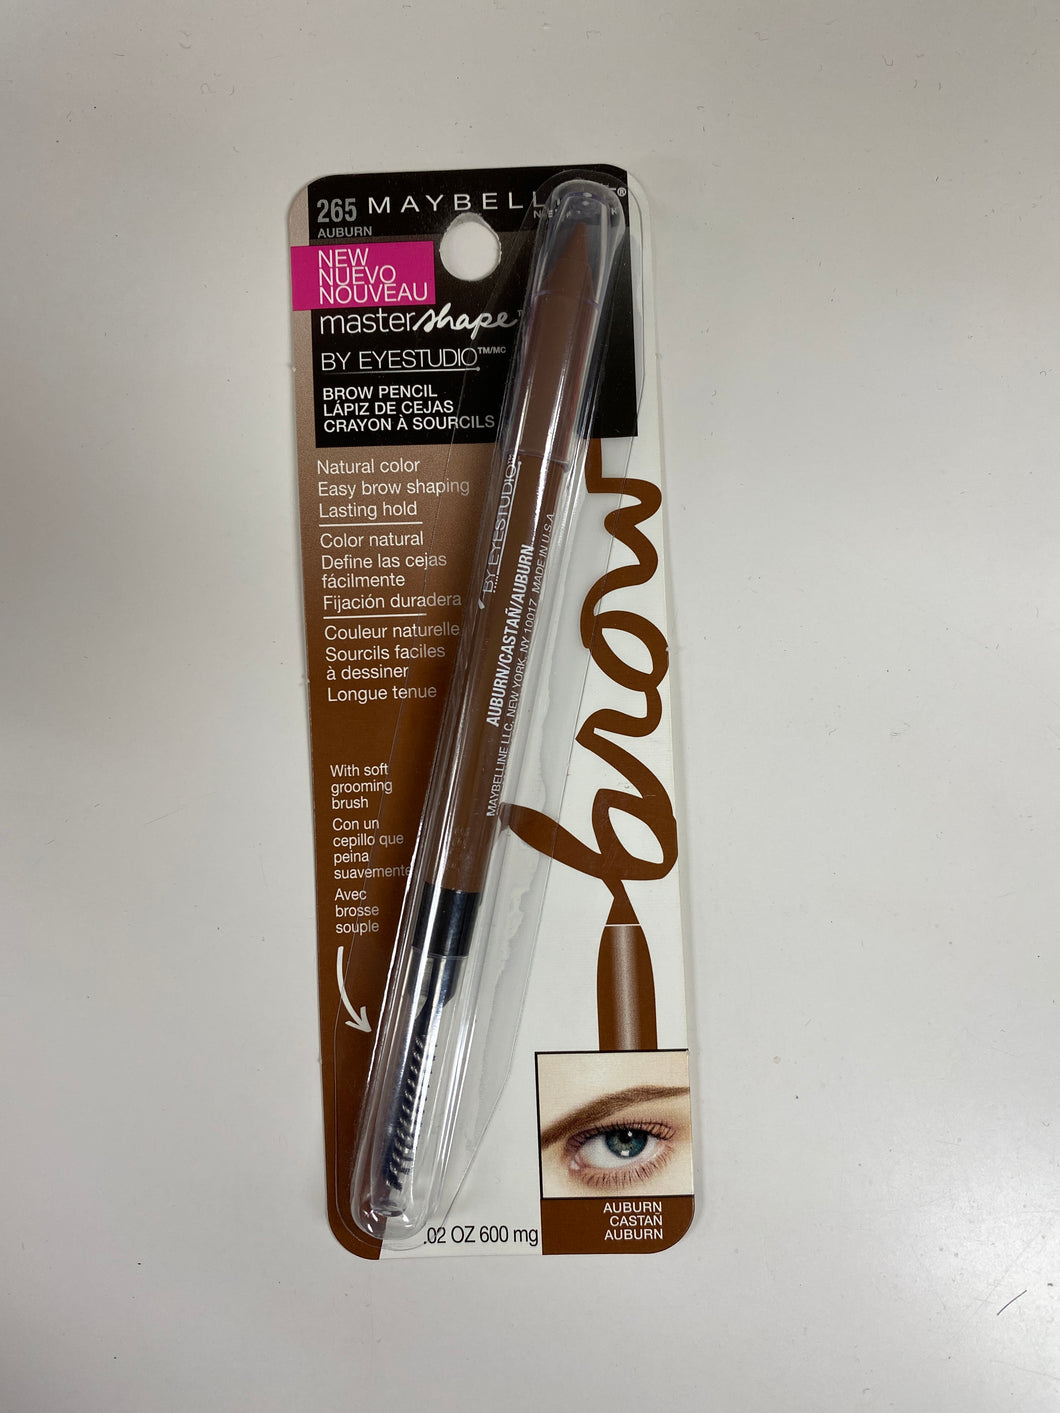 Maybelline Master Shape Brow Pencil - Auburn